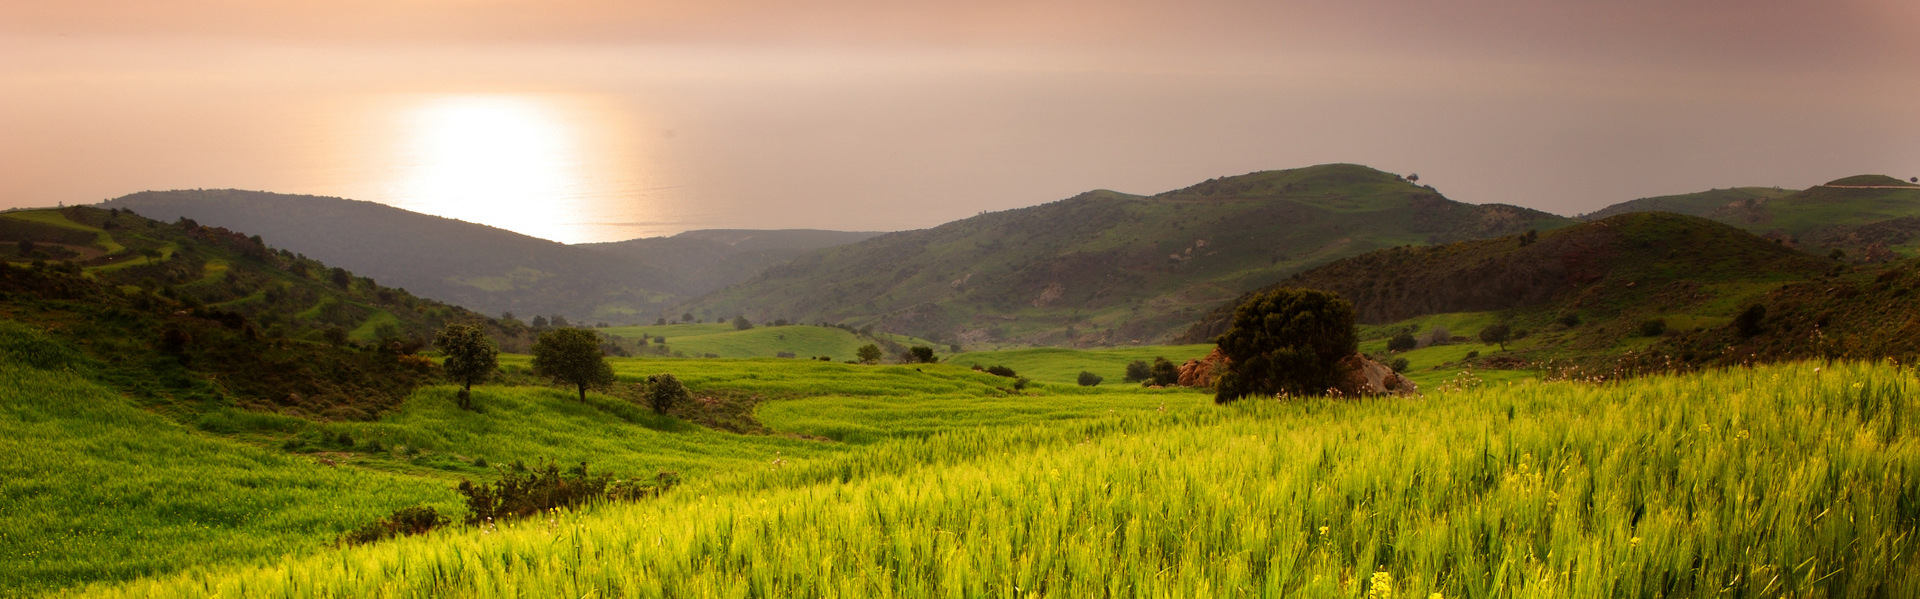 Field_in_the_sunset_2_Pafos_lrg-002